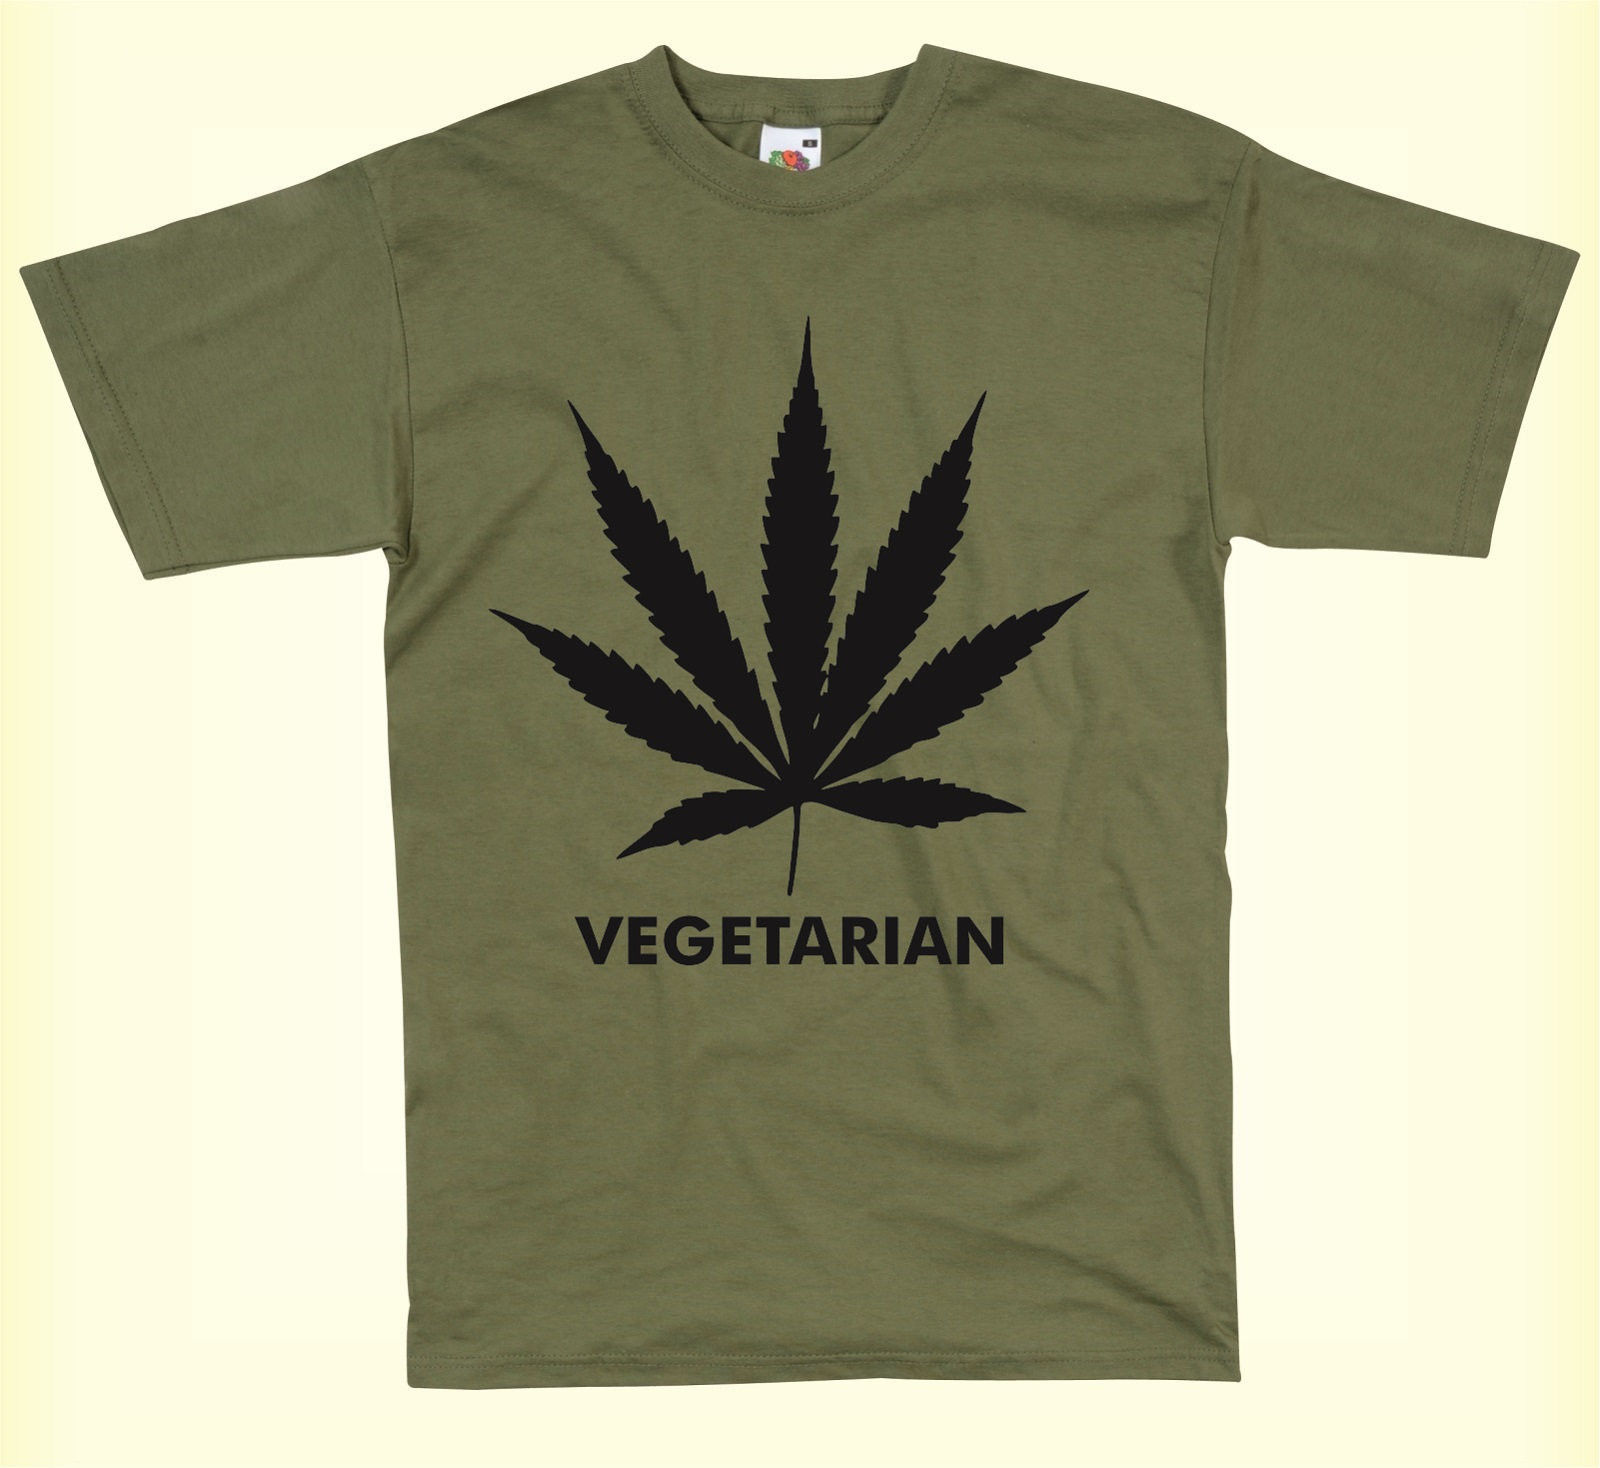 4224bb04 VEGETARIAN WEED SMOKING CANNIBAS LEAF AWESOME FUNNY UNISEX MENS T-SHIRT  Cool T-Shirts Designs Best Selling Men